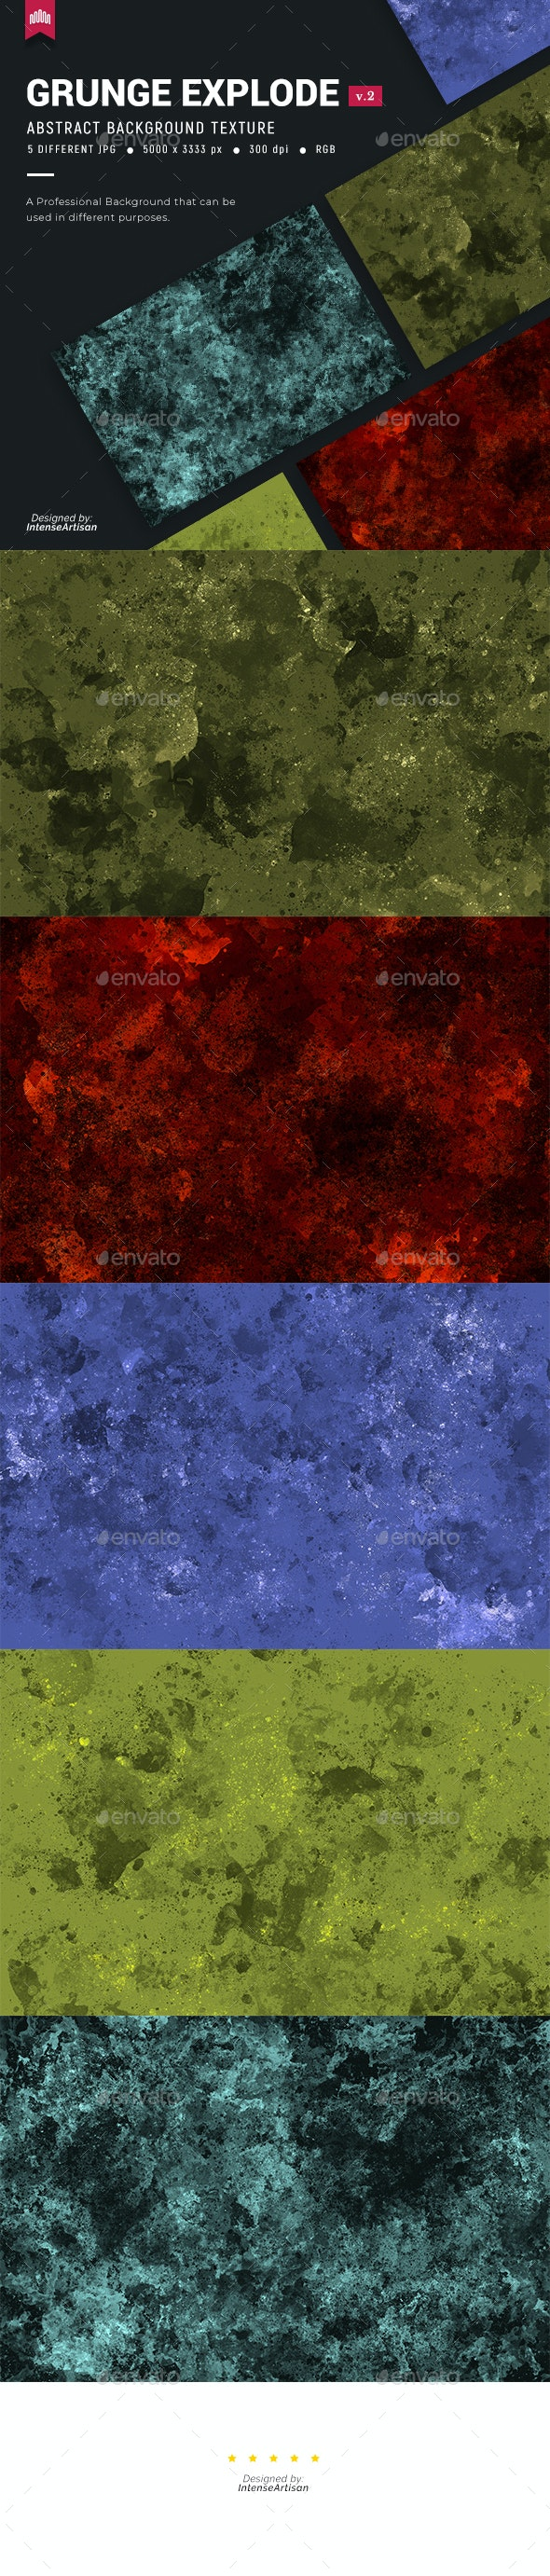 Grunge Explosion V.2 - Background - Abstract Backgrounds